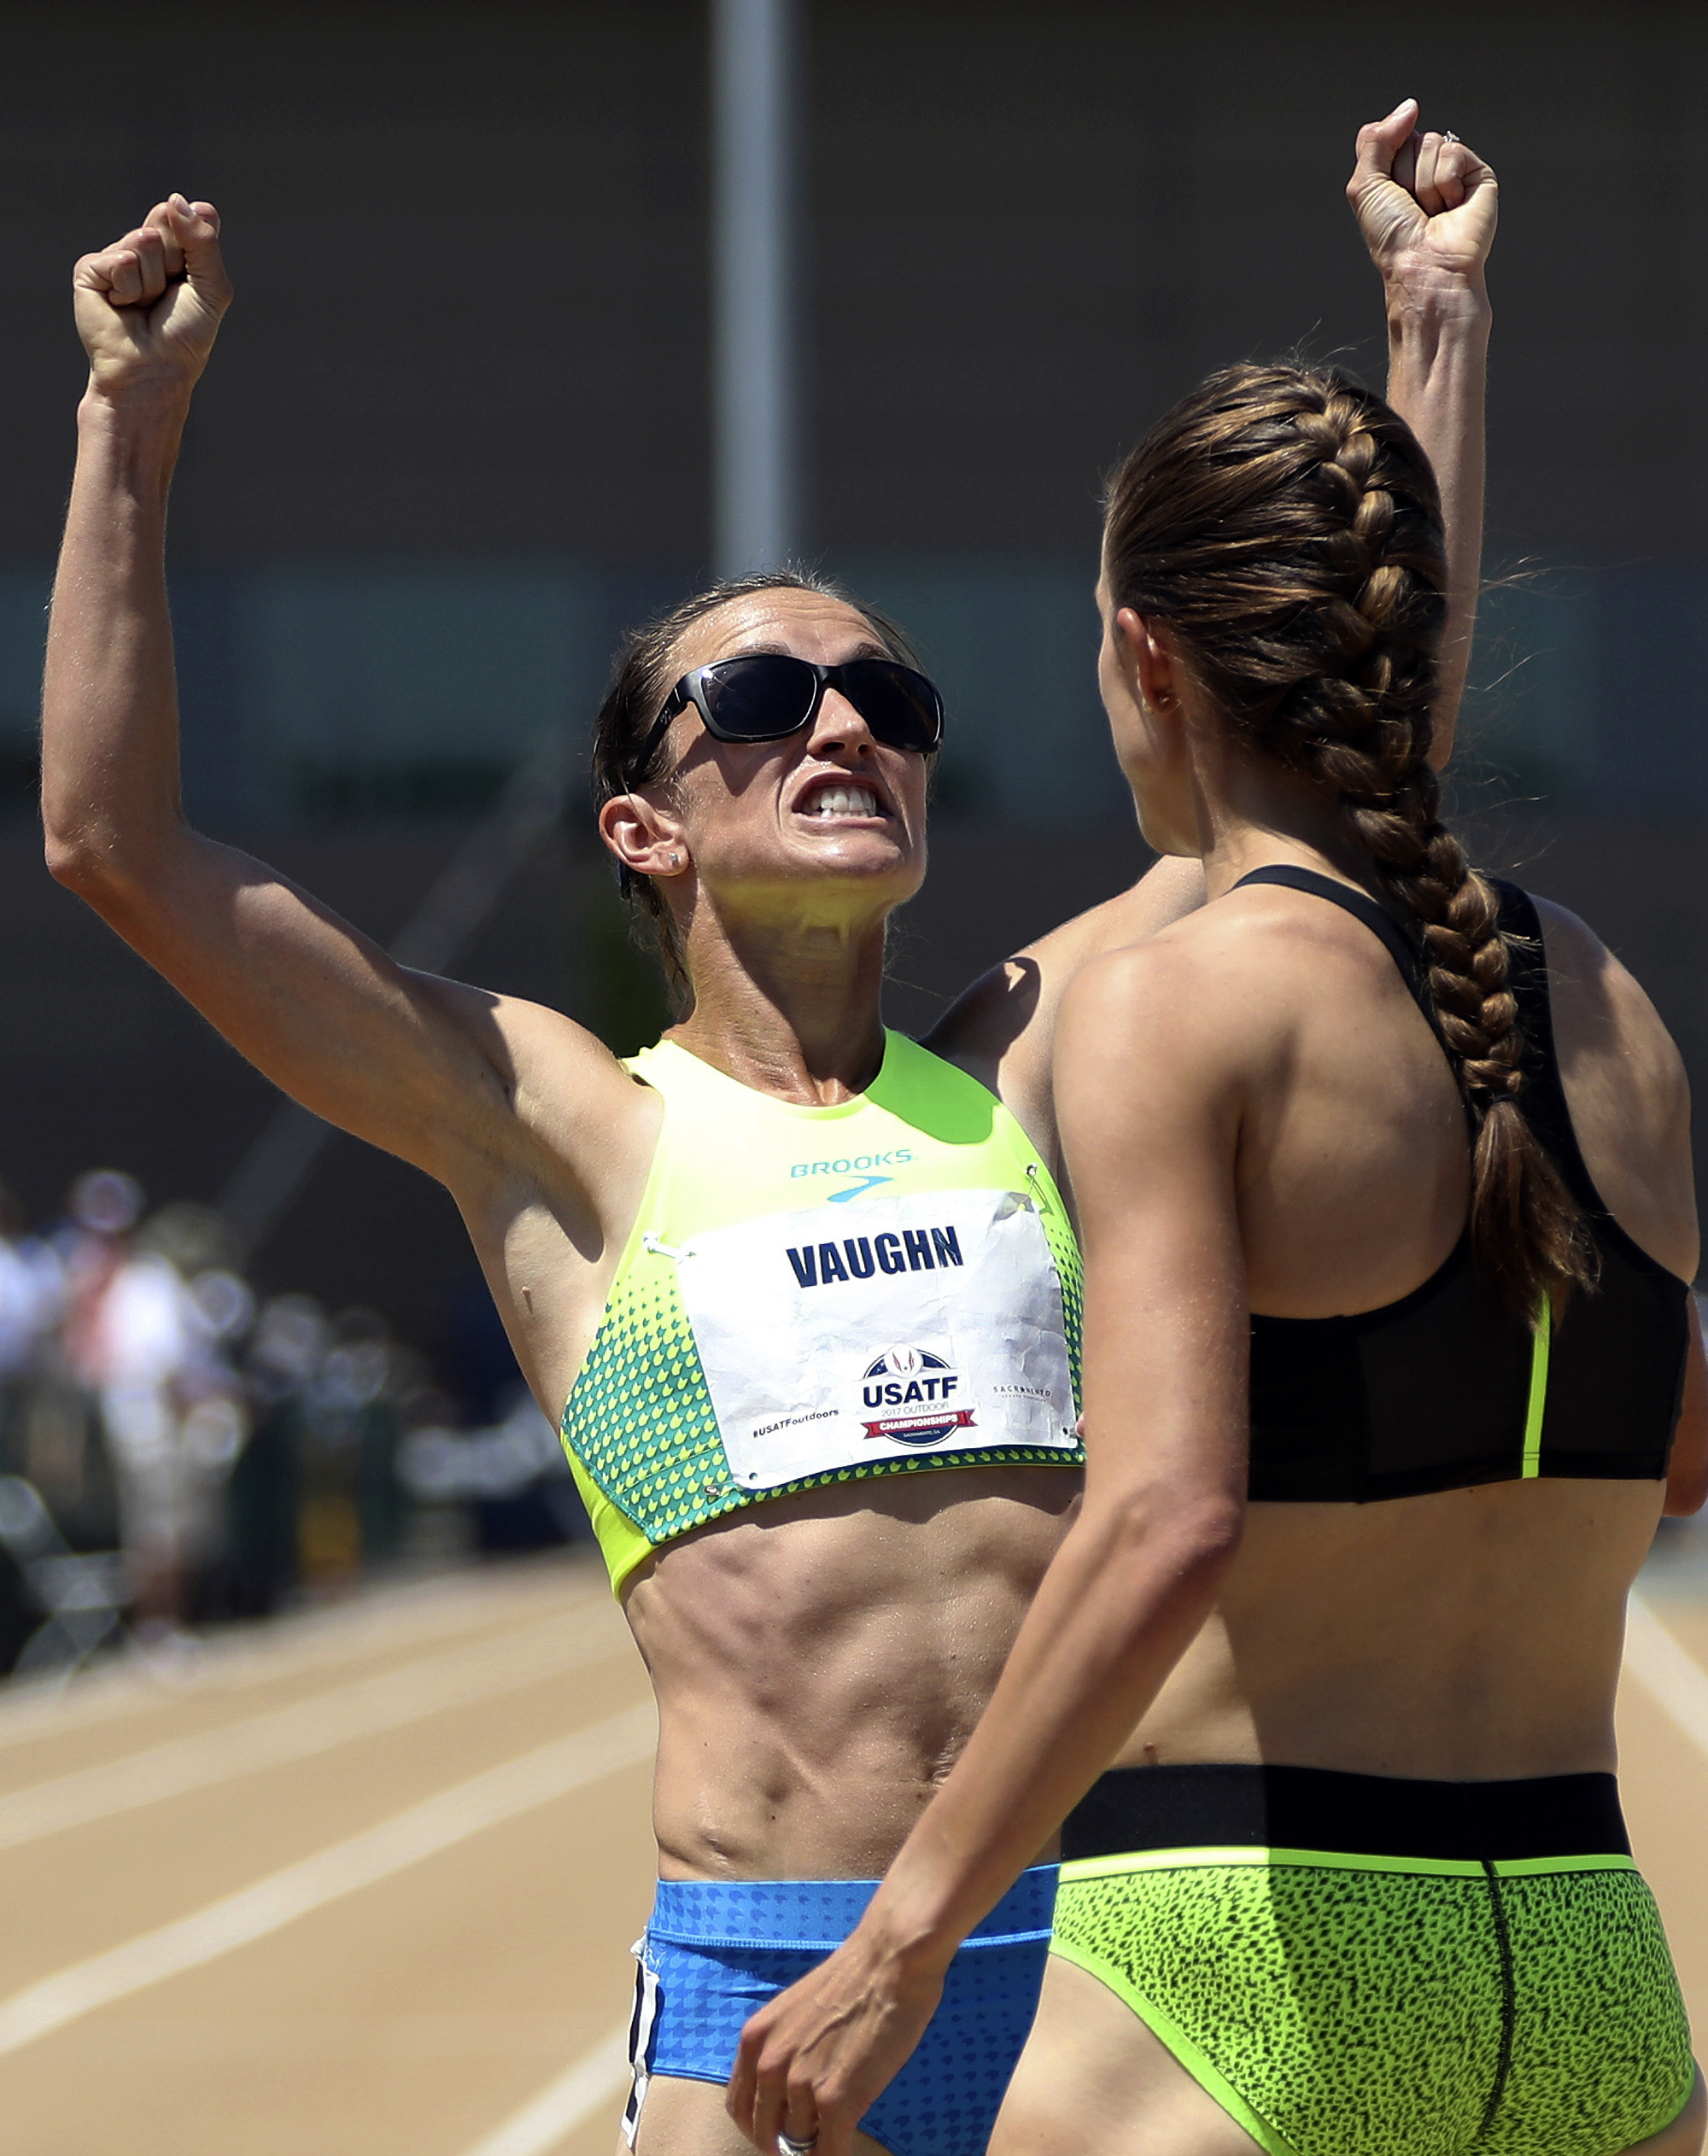 FILE - In this June 24, 2017, file photo, Sara Vaughn, left, celebrates after she finished third in the women's 1,500 meters at the U.S. Track and Field Championships in Sacramento, Calif., as first-place finisher Jenny Simpson, right, watches. Vaughn, a